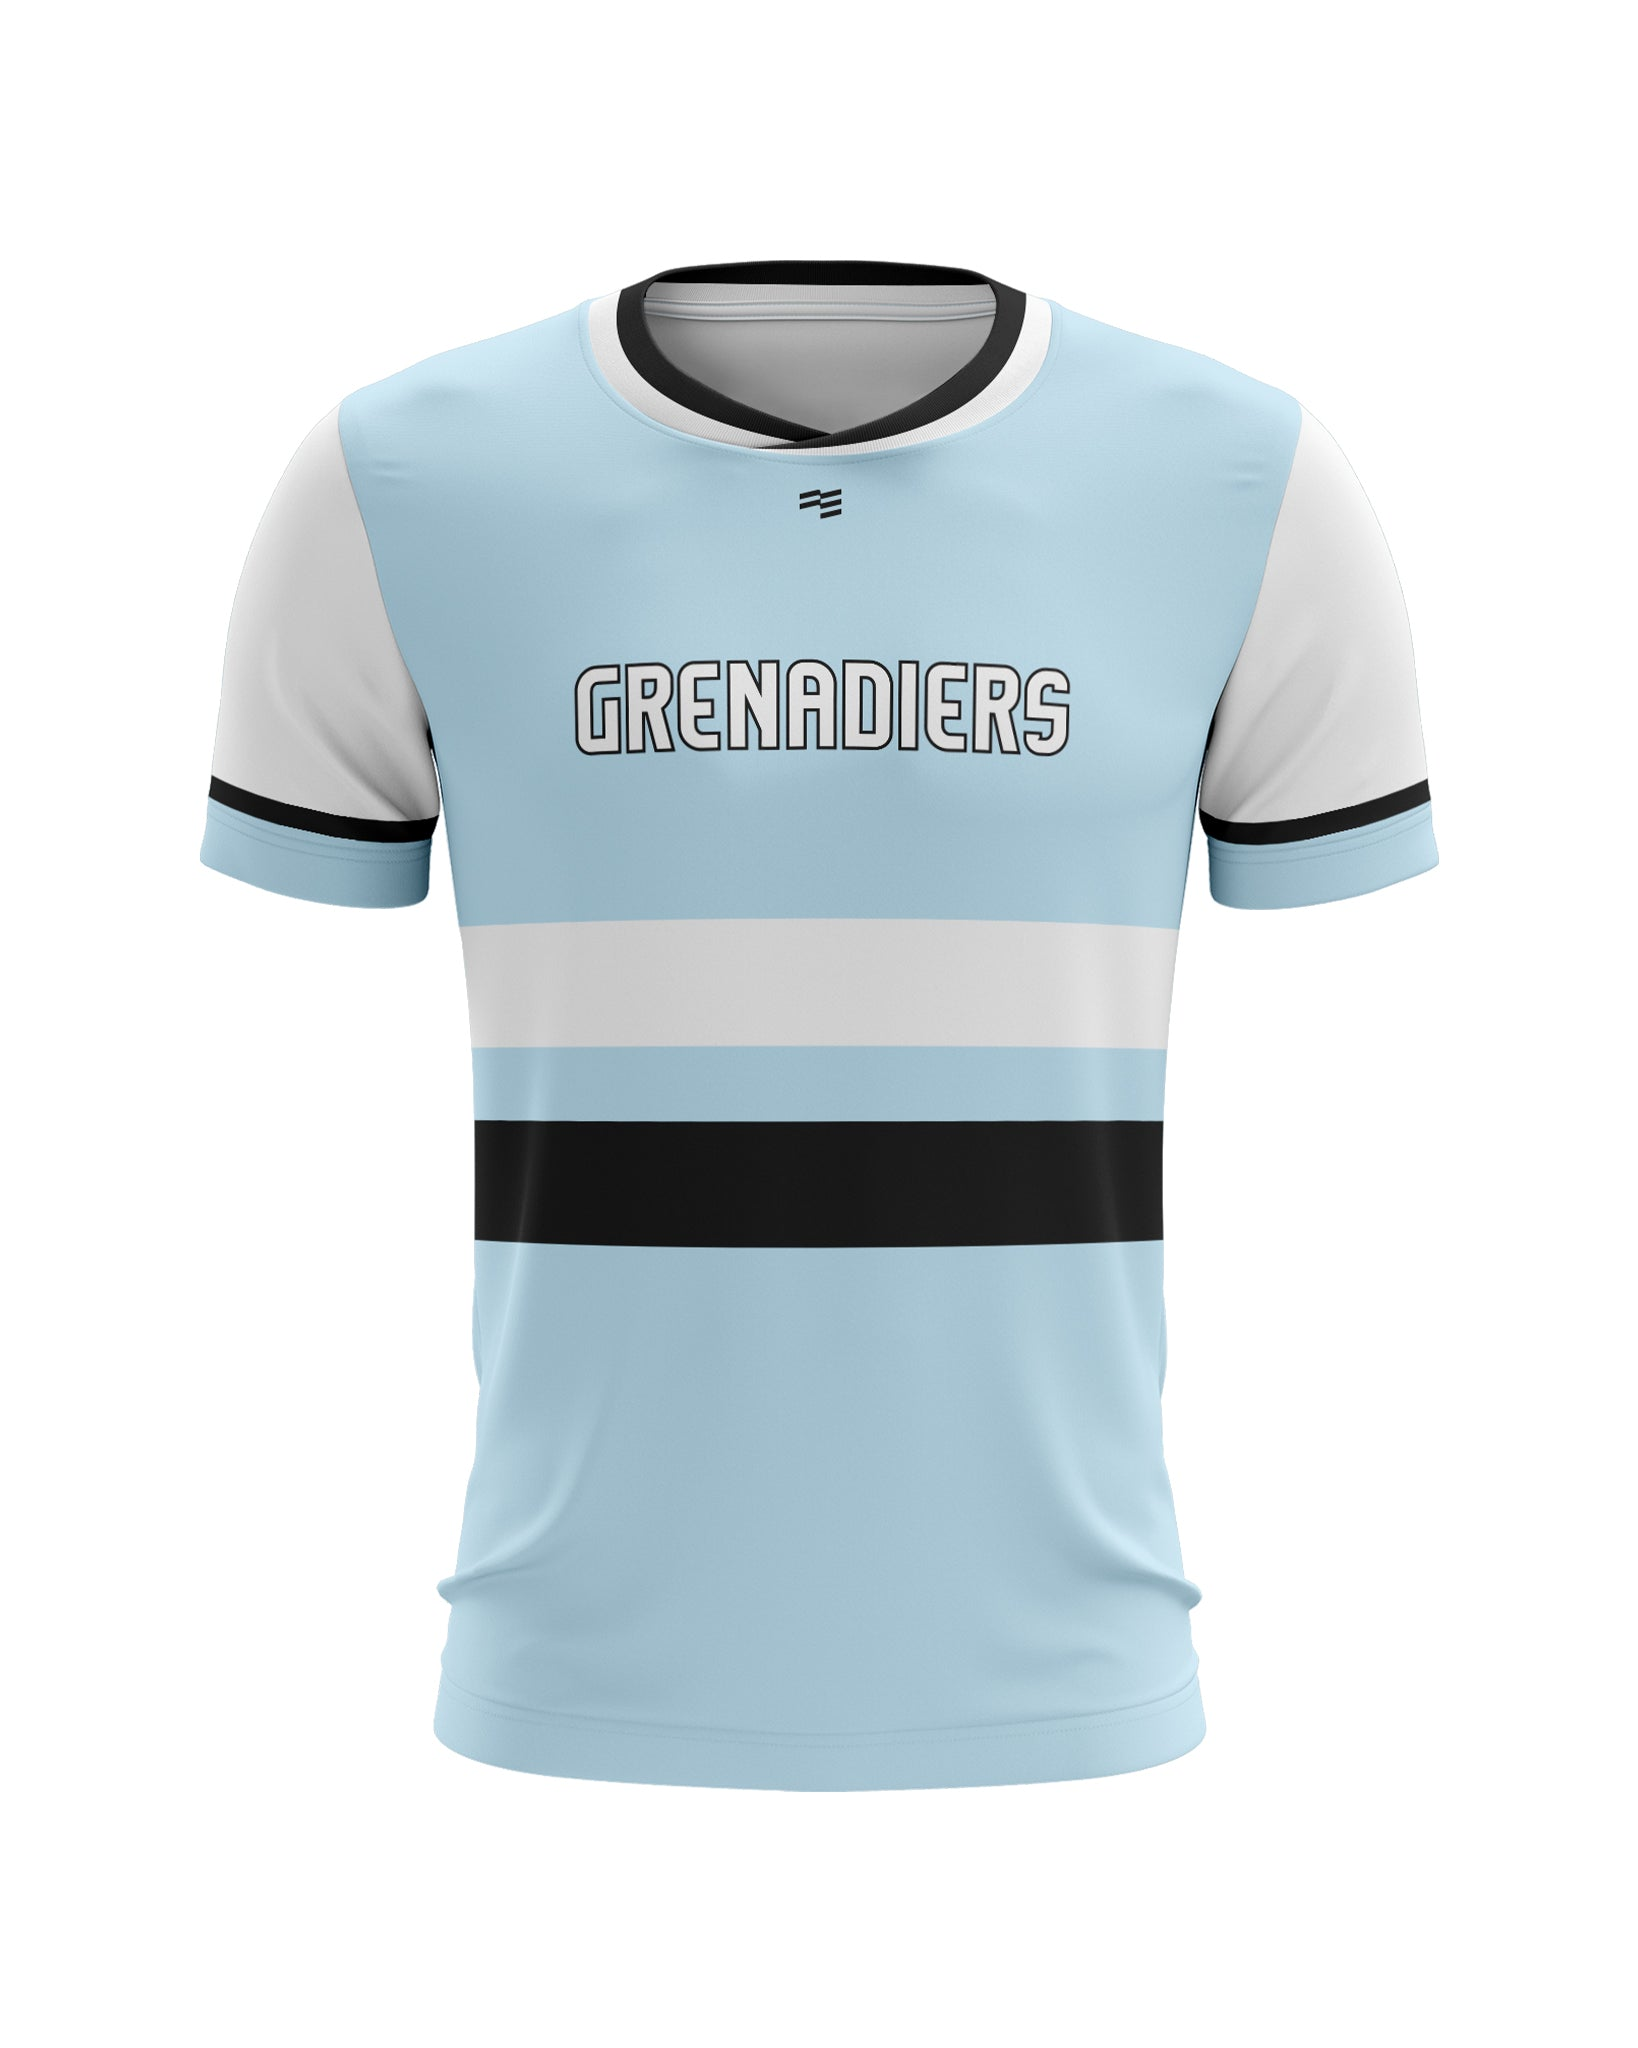 Grenadiers Rugby Jersey - Mens